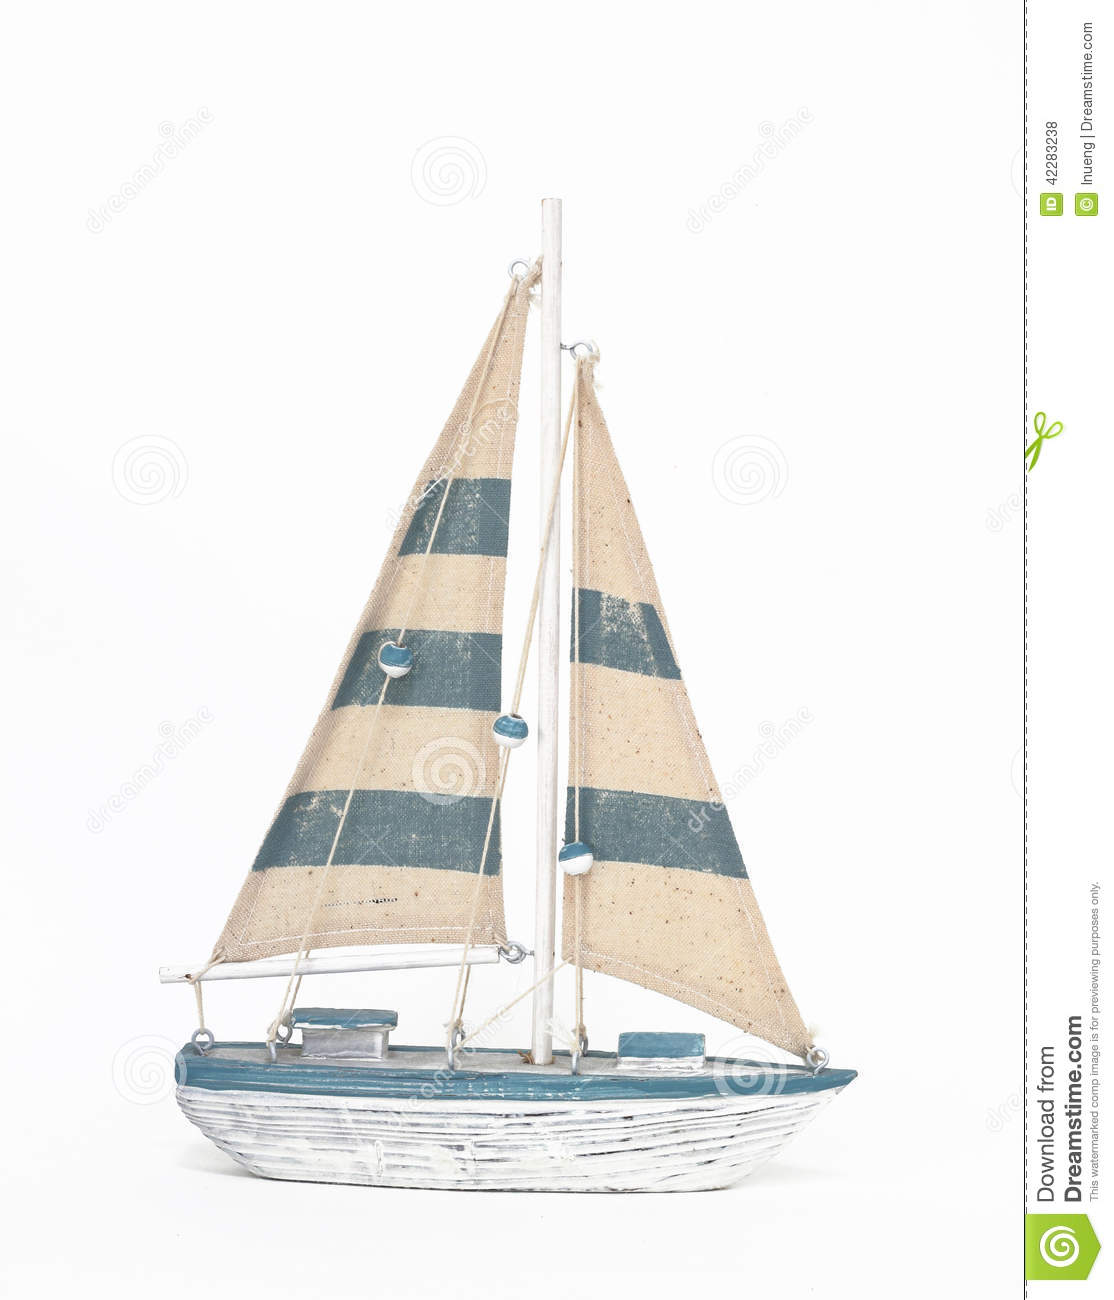 Wooden Toy Sailing Boat On White Background Stock Photo - Image ...